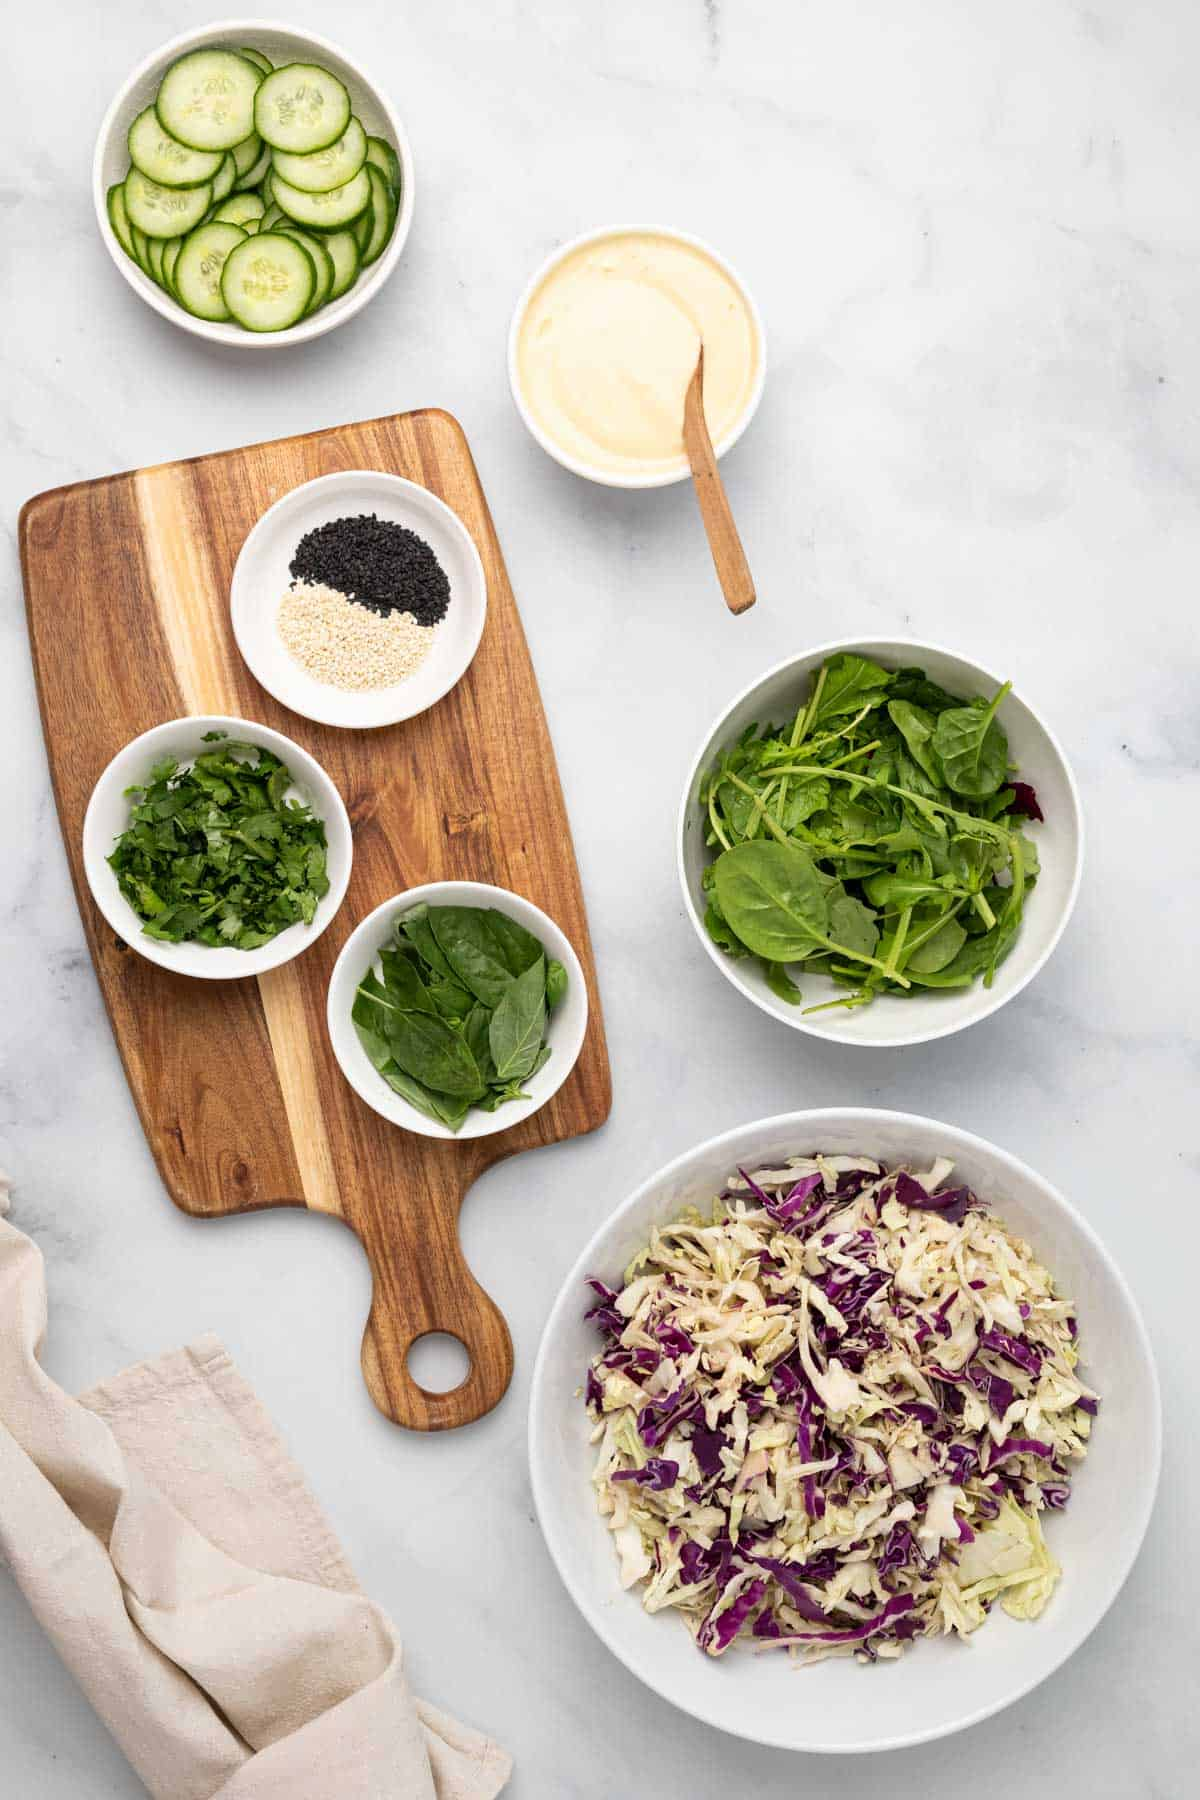 ingredients for the salad on a wooden board